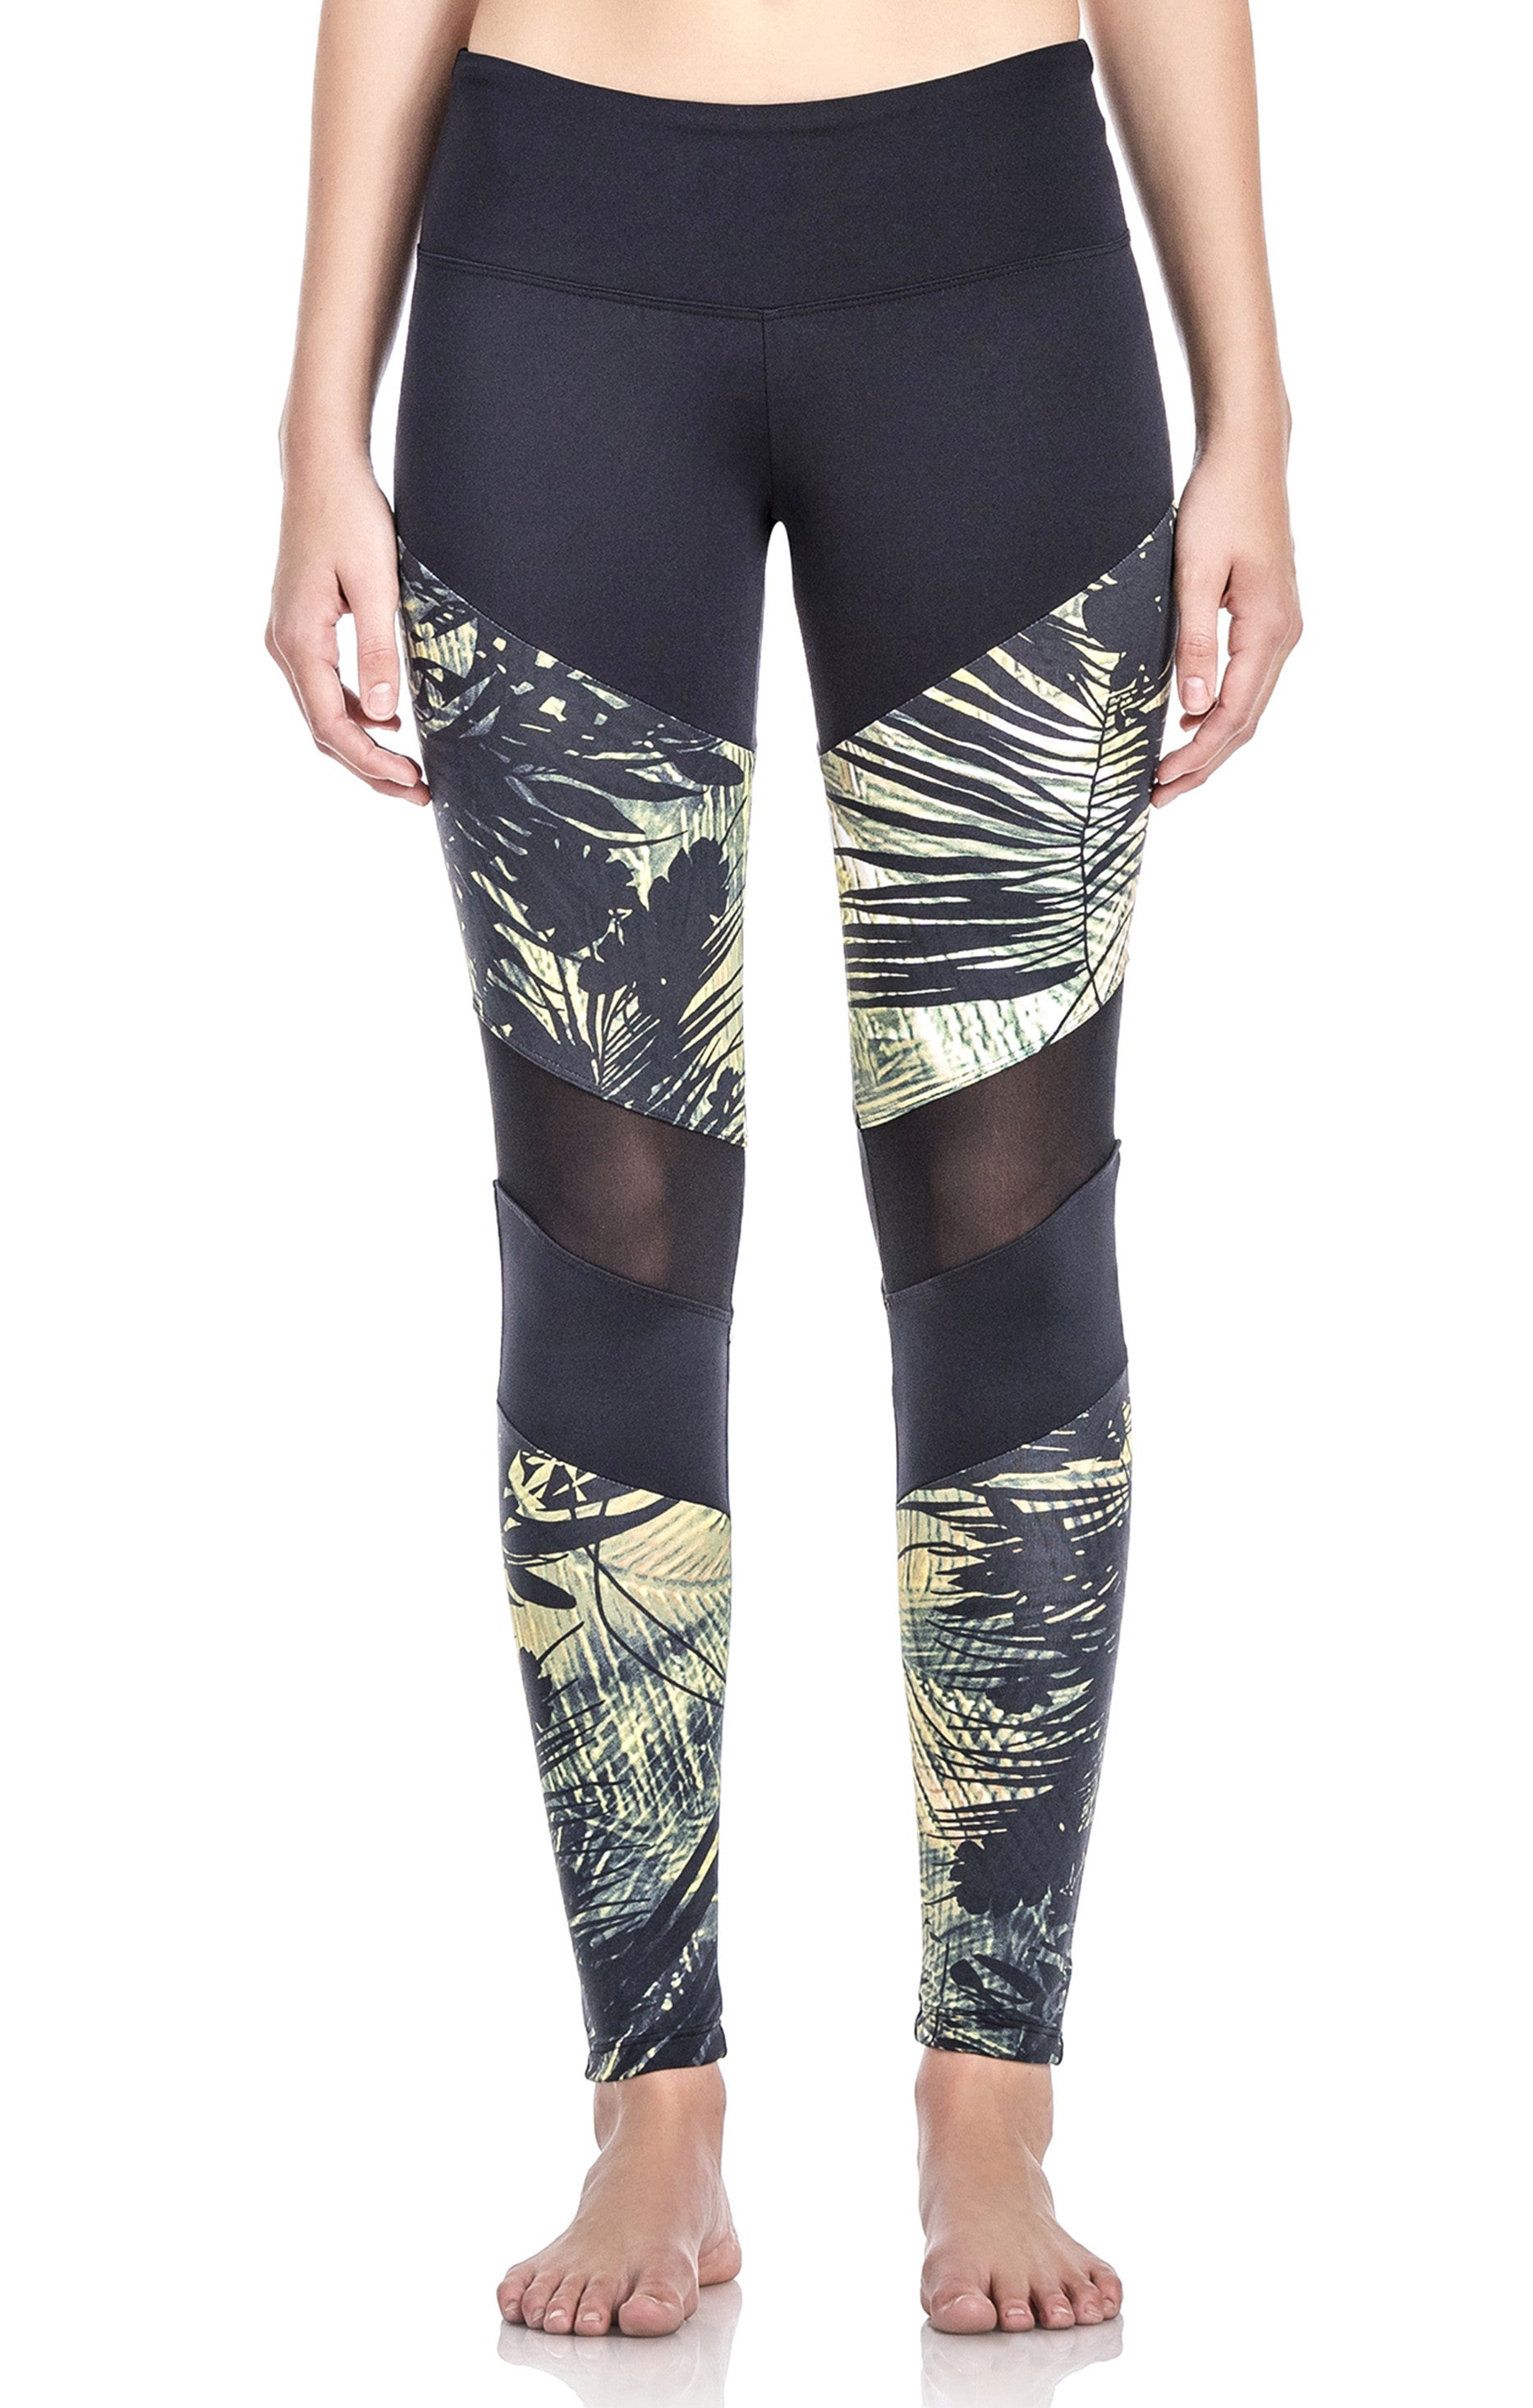 Karen Legging - Workout Bottoms